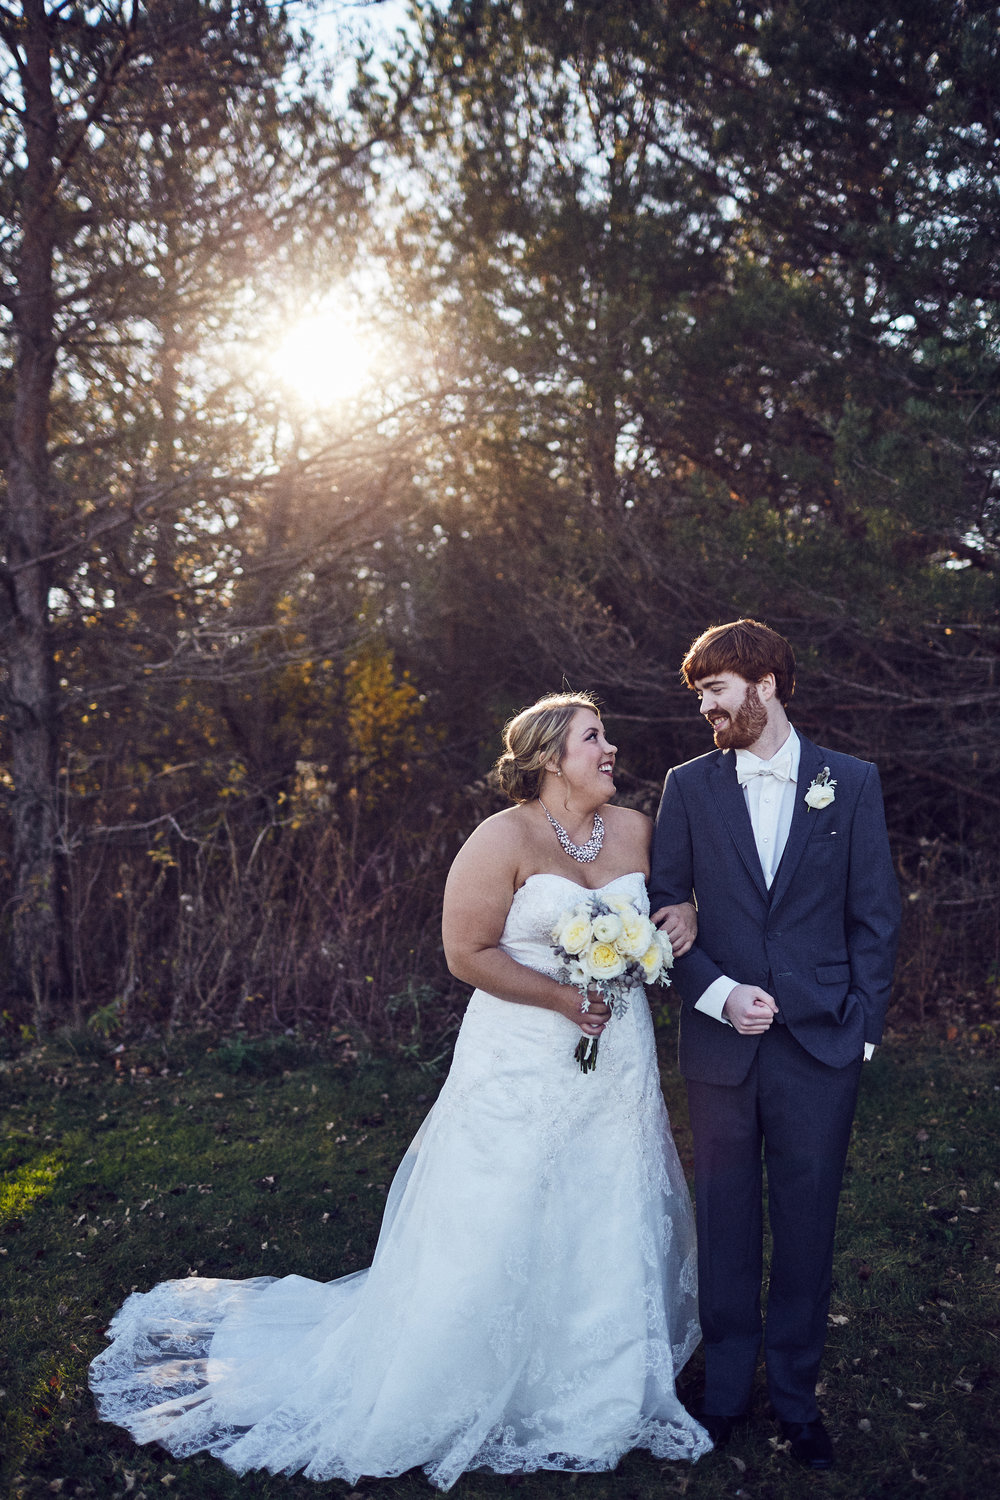 Twin_Cities_Minneapolis_Minnesota_Wedding_Photographer_Candid_Barn_Rustic_Outdoor_Joe_Lemke_045.JPG